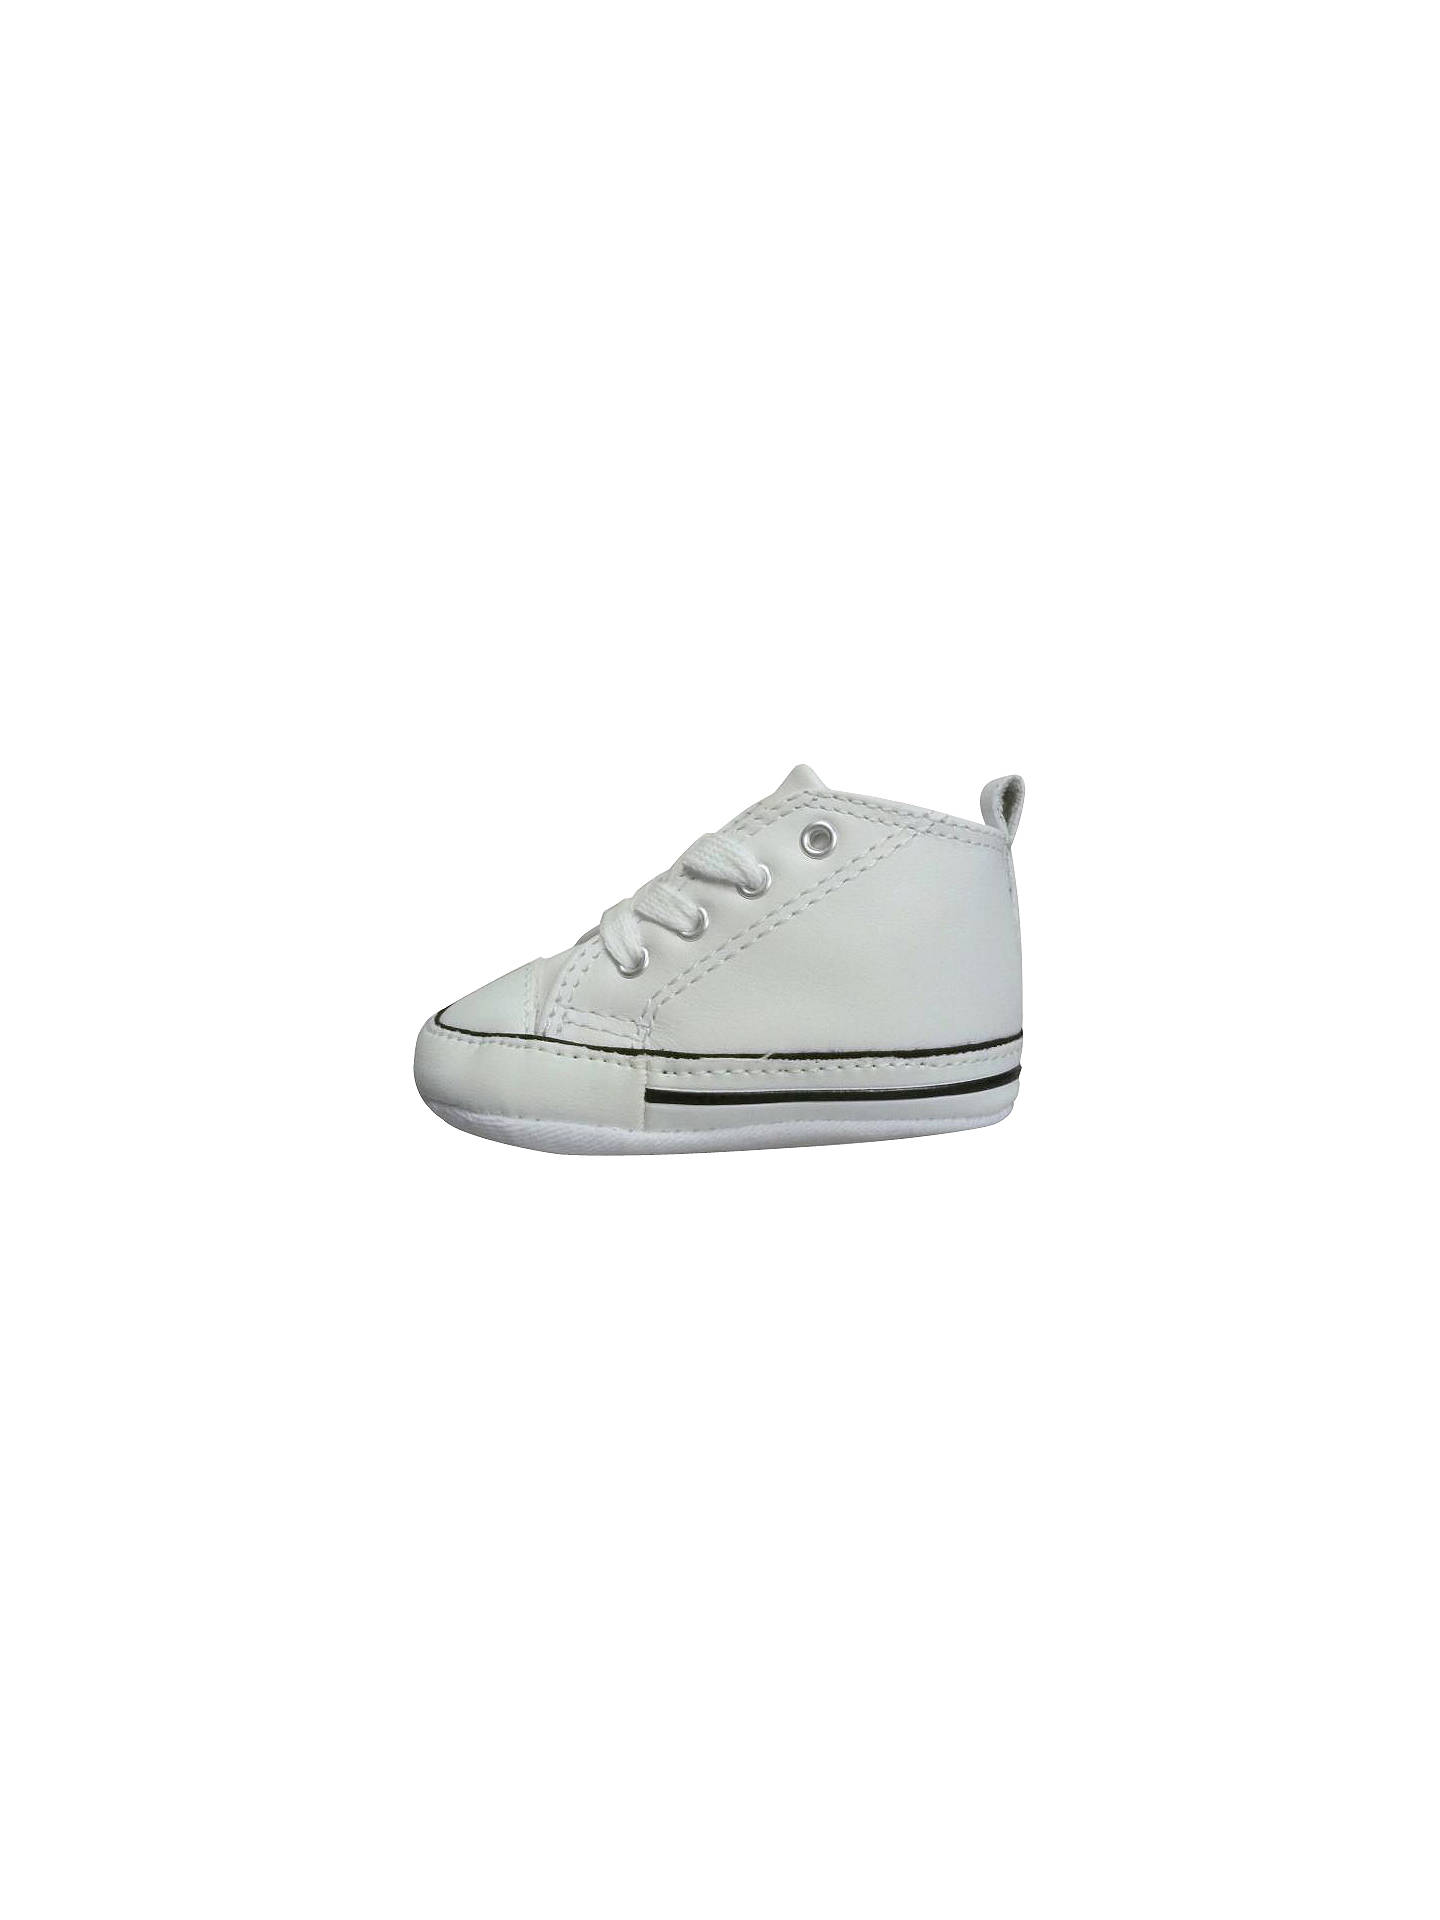 2727b2d36a Converse Children s First Star Trainers at John Lewis   Partners